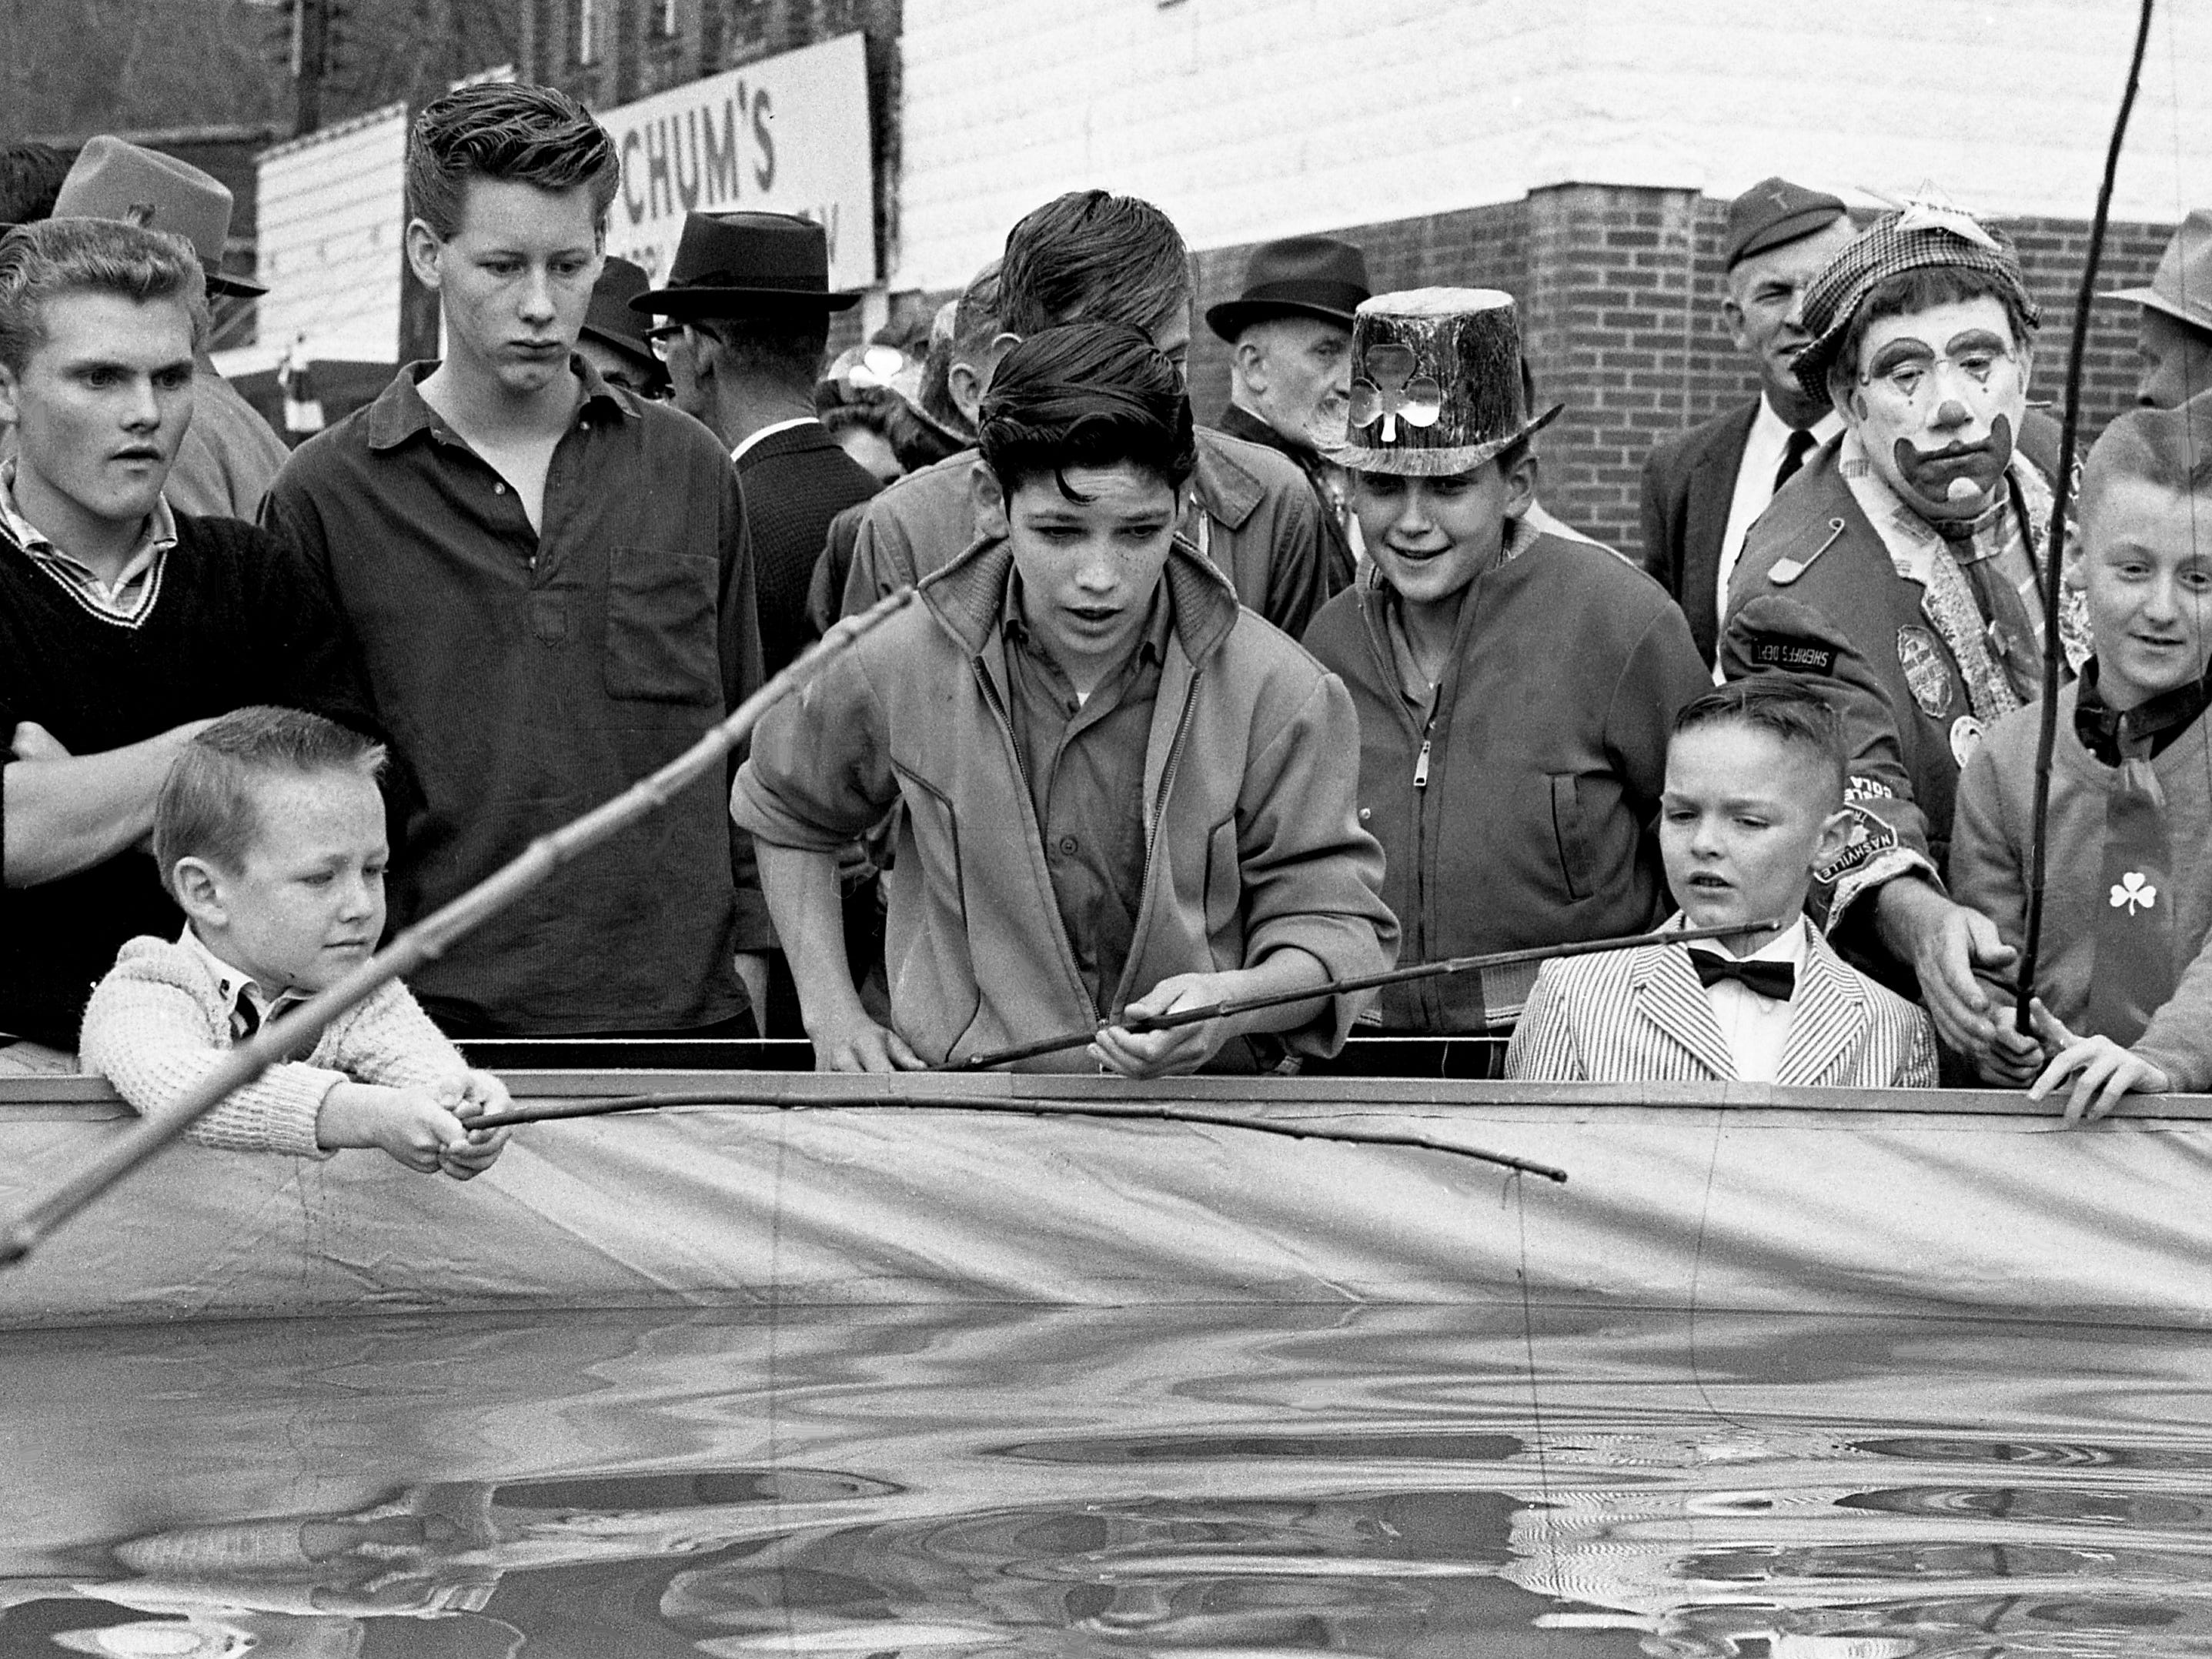 Some youngsters are trying out their luck in the fishing tank set up at the second annual Wearing of the Green celebration in Erin, Tenn. March 14, 1964.